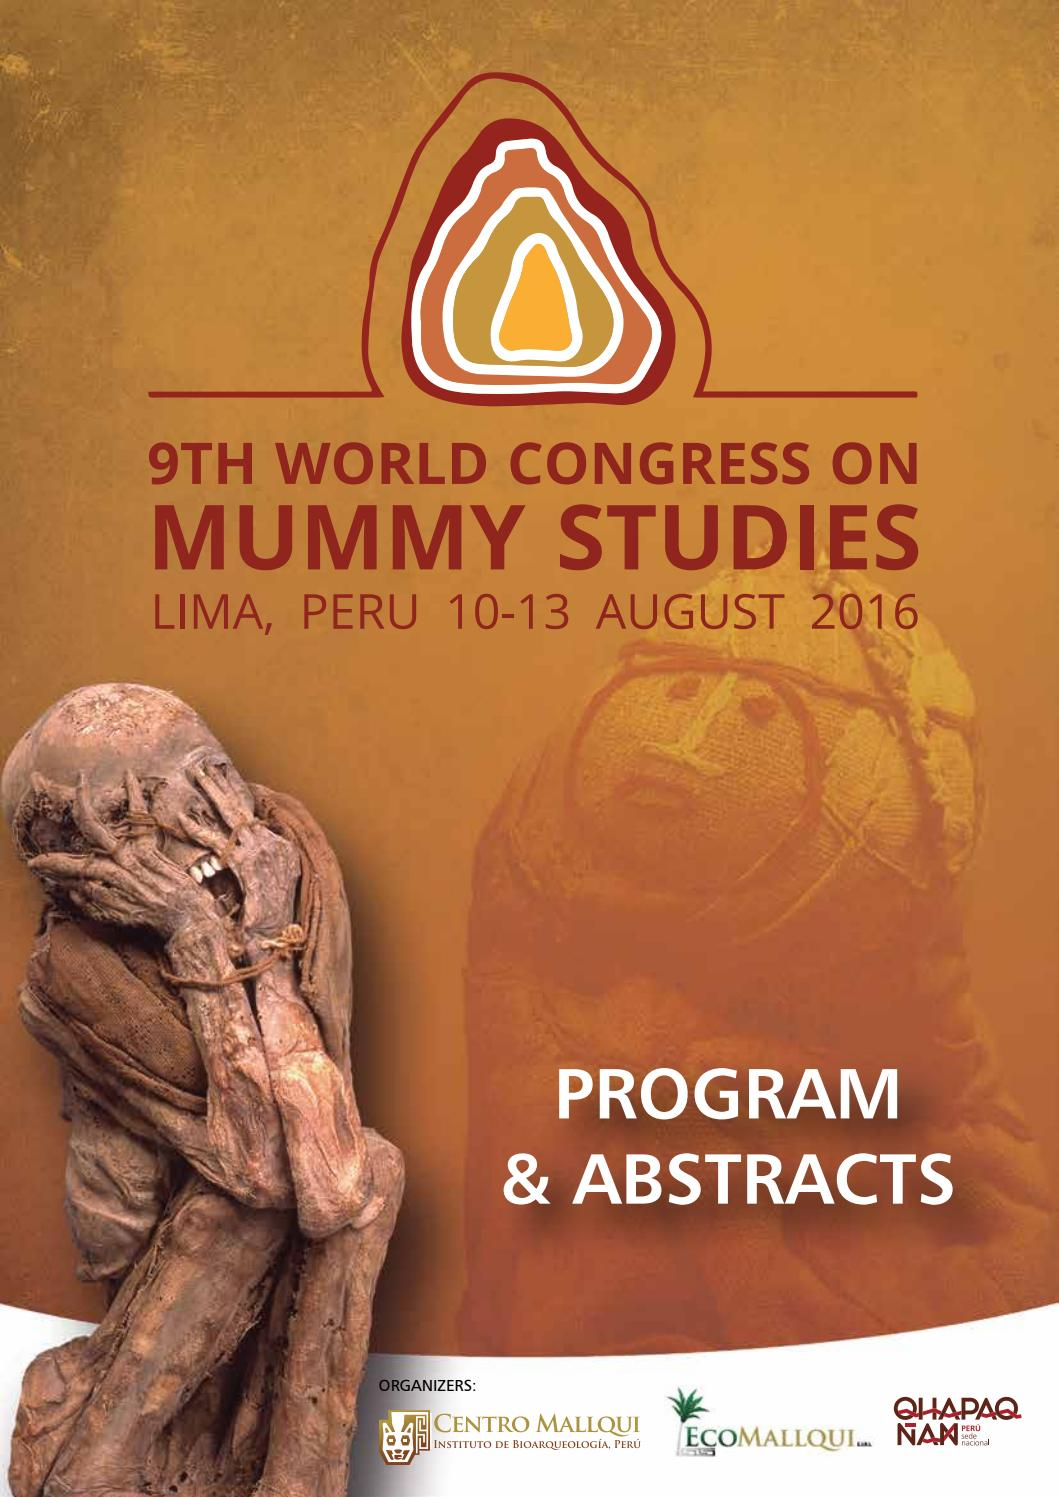 9th World Congress on Mummy Studies by mummy.congressperu - issuu